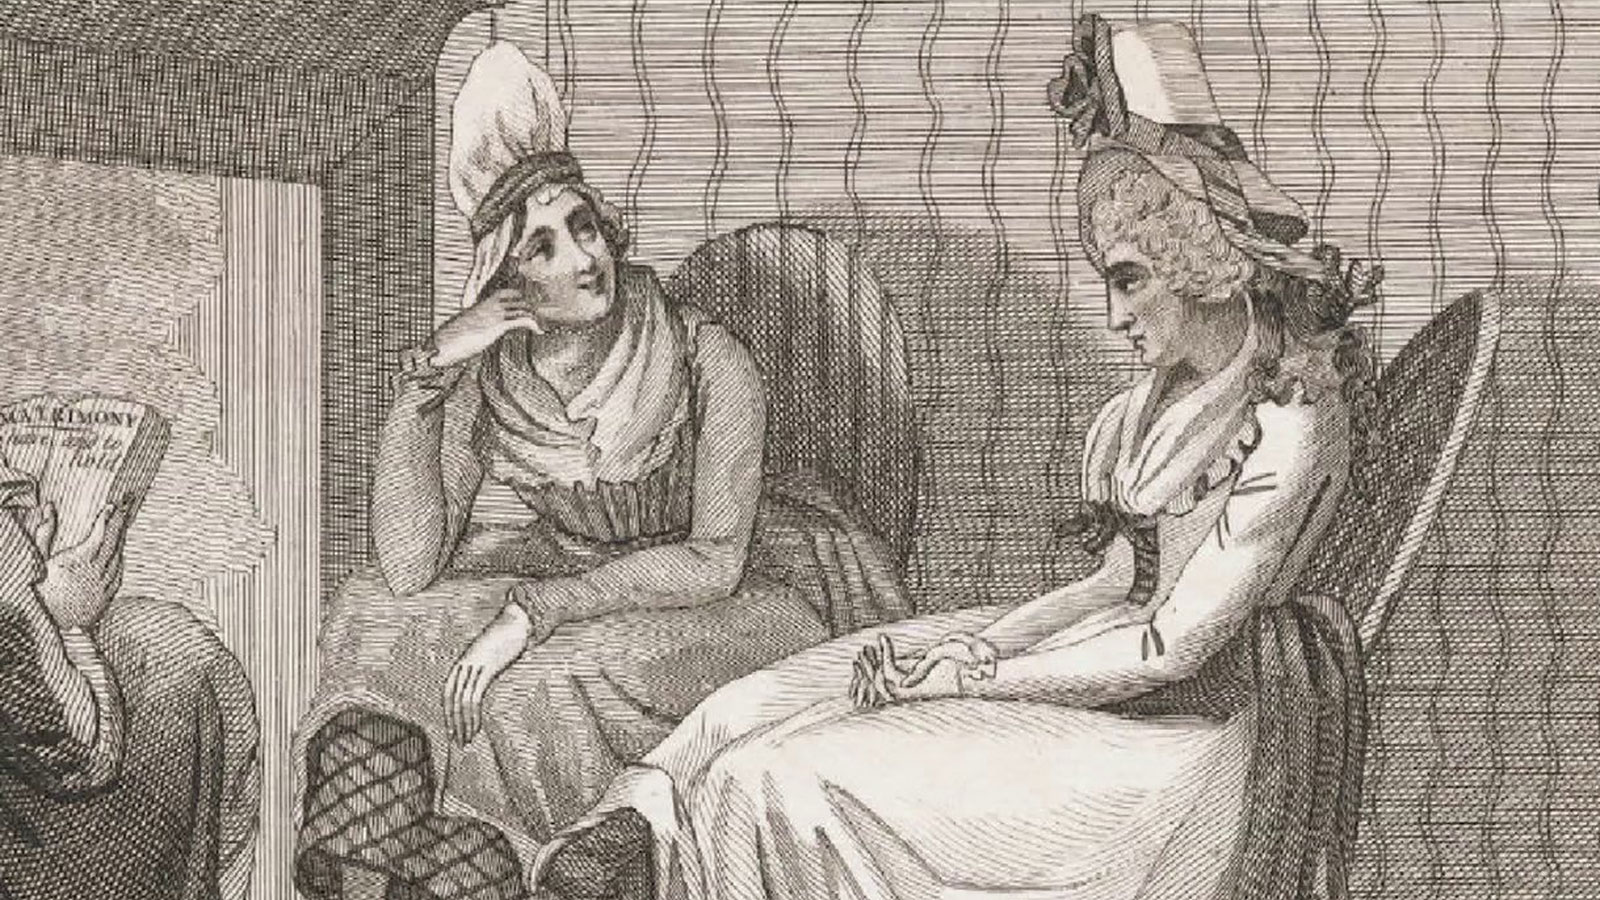 Jane Austen - Gender and morality